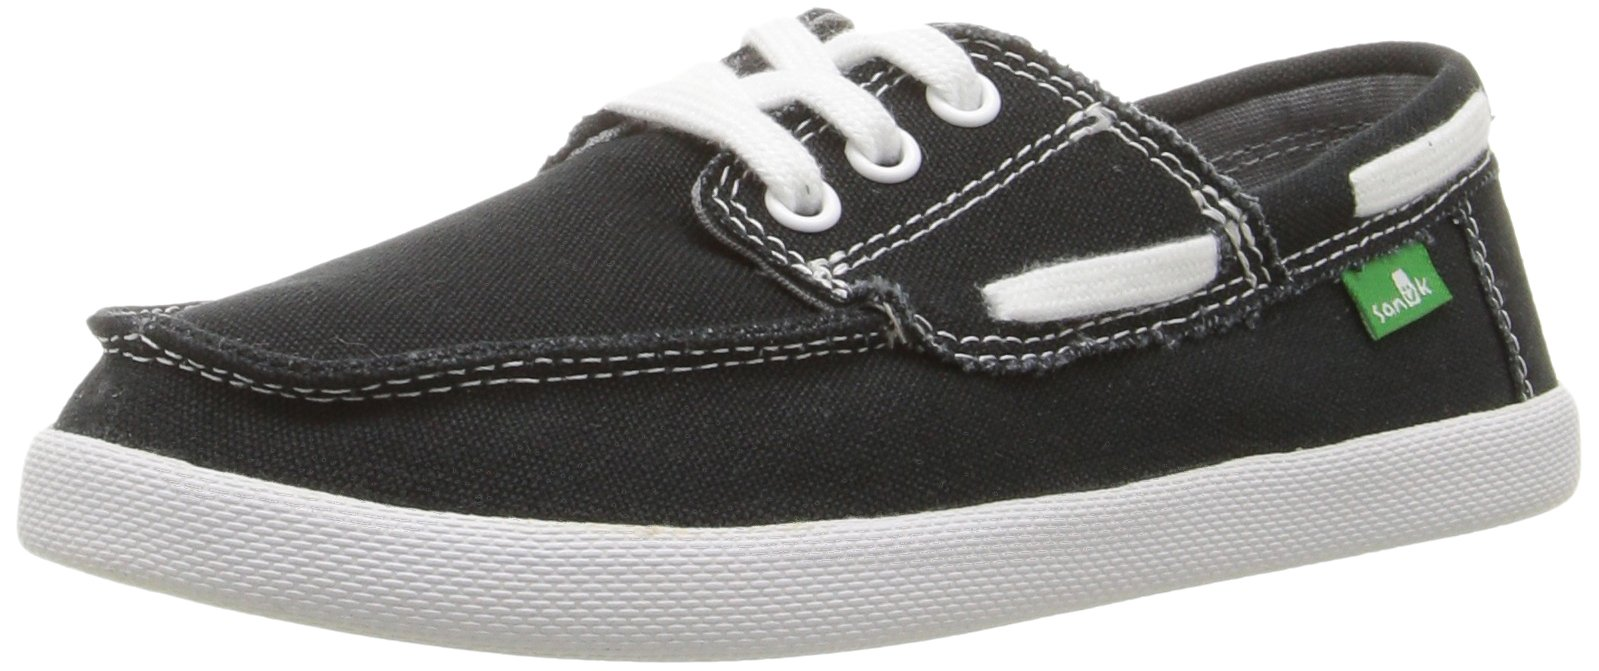 Sanuk Kids Boys' Lil Deck Hand Boat Shoe (Toddler/Little Kid/Big Kid), Black, 2 M US Little Kid